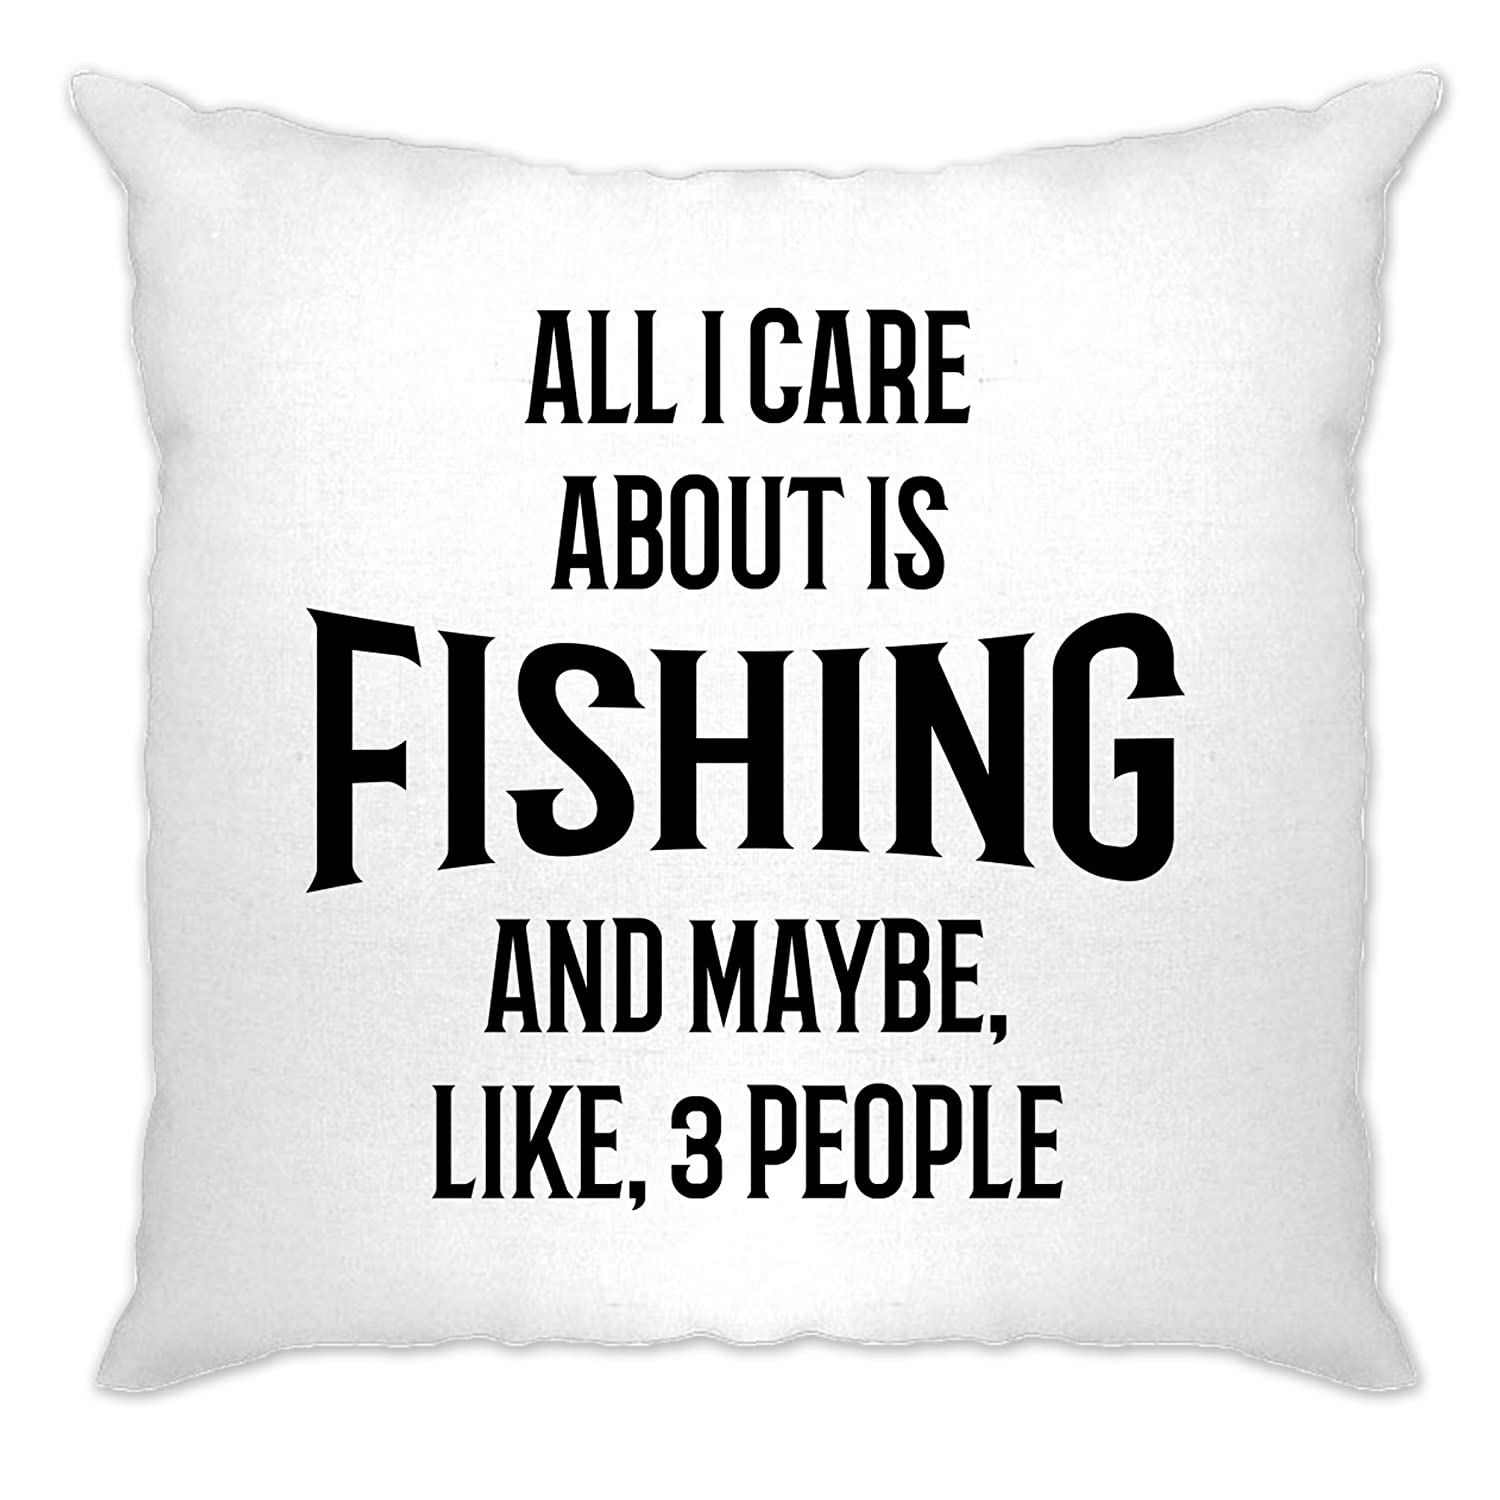 Fishing Cushion Cover Sofa Home All I Care About Is Fishing And Like 3 People Fish Rod Line Hook Bait Reel Dad Grandad hobby Cool Funny Gift Present A-CC-02055-NAT